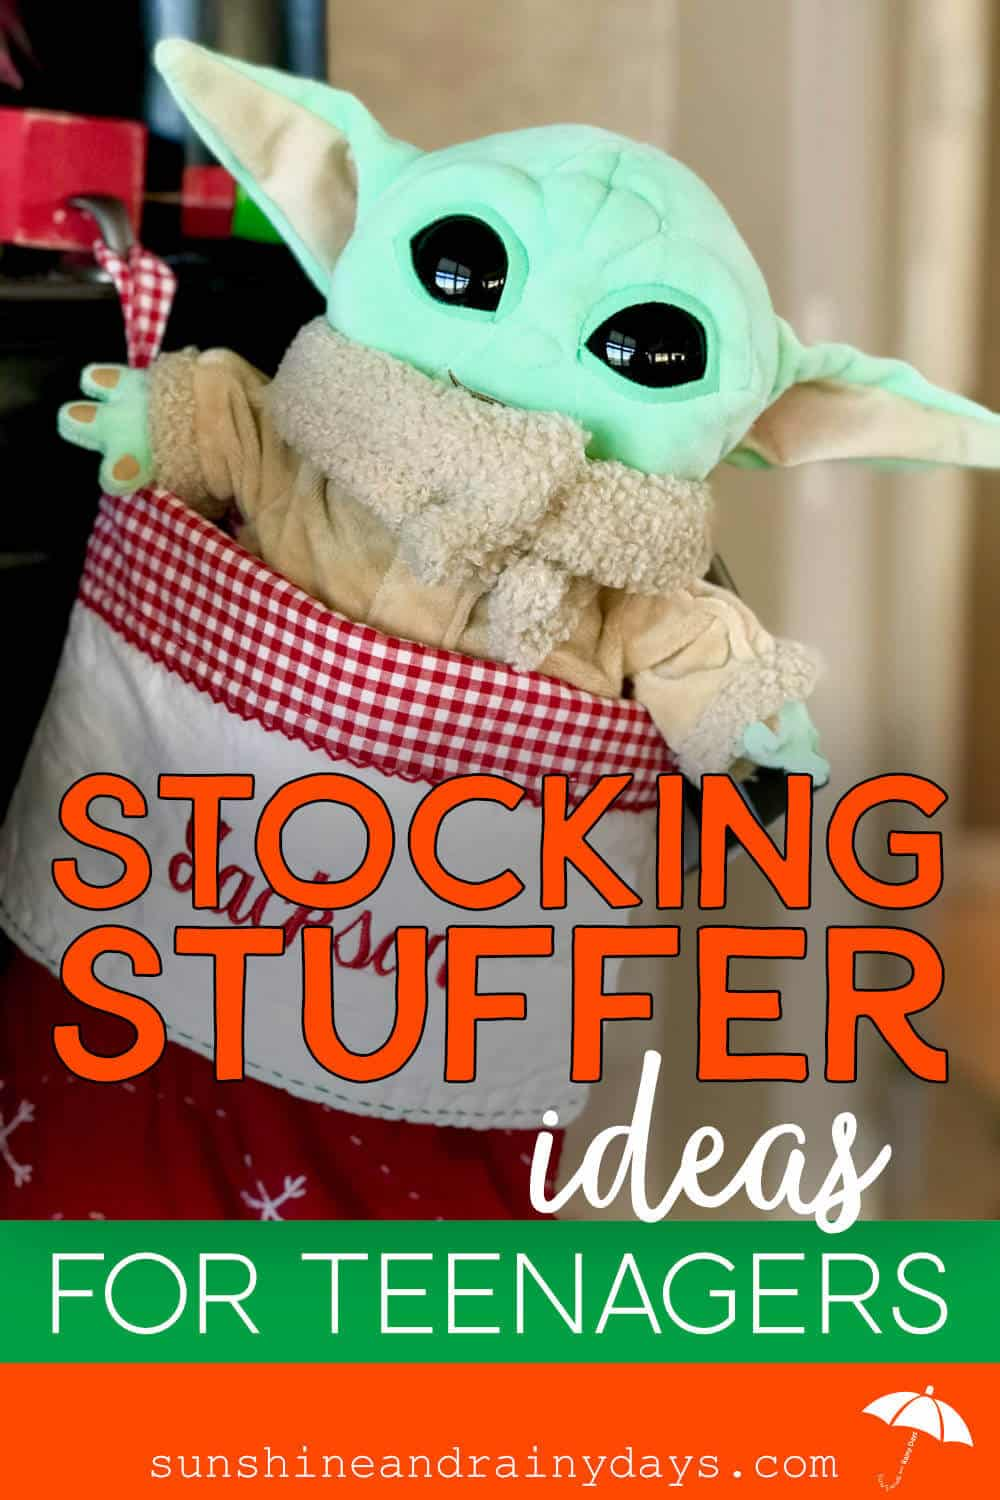 Baby Yoda in a Christmas Stocking with the words: Stocking Stuffer Ideas For Teenagers